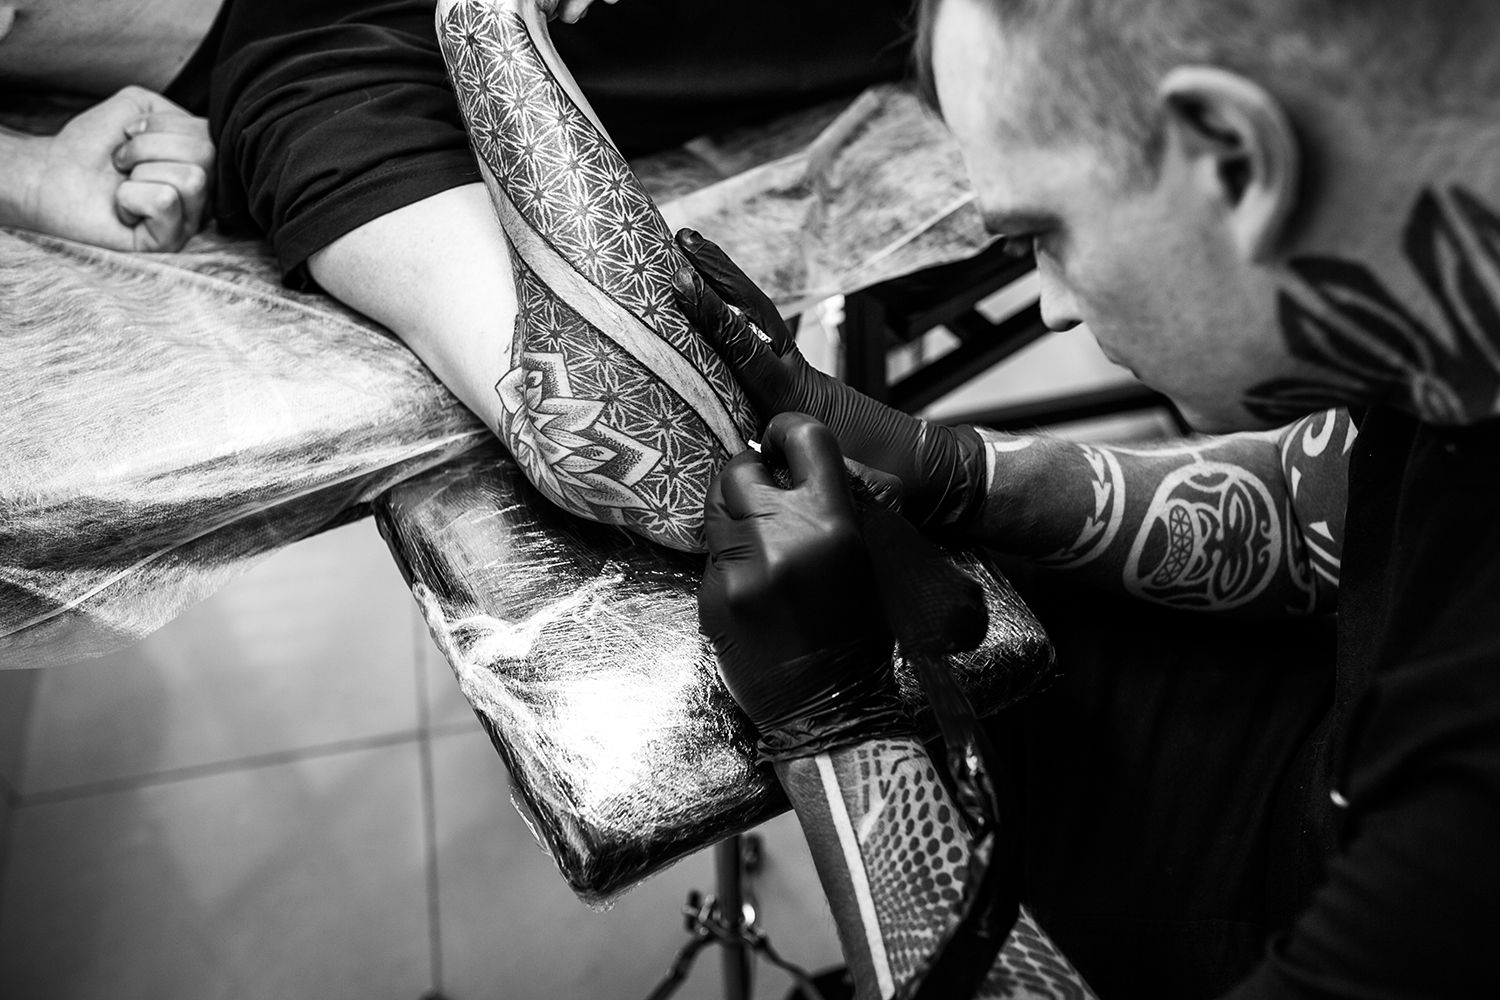 dotwork tattoo, on elbow, arm by ilay cascad, ornamental style, bishop machine